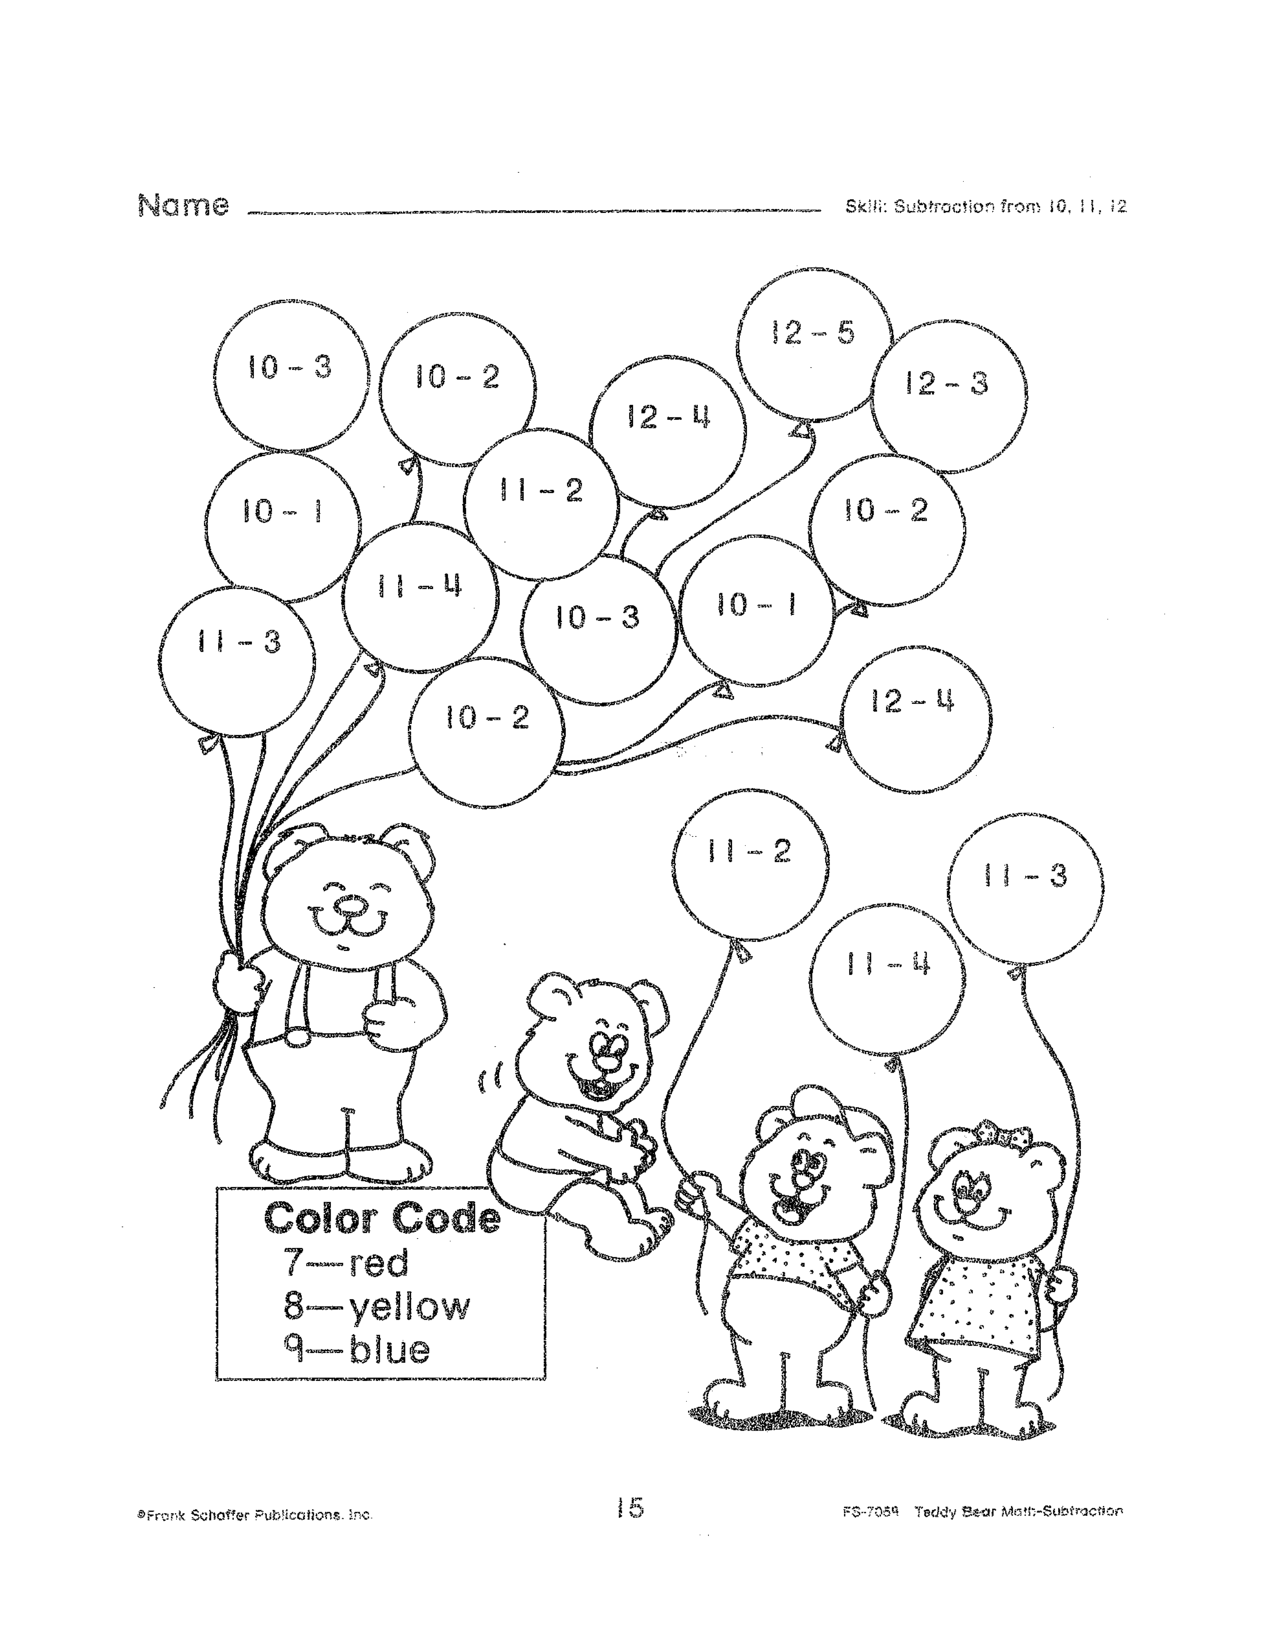 2nd grade coloring sheet - Second Grade Math Worksheets Second Grade Worksheets 2nd Grade Second